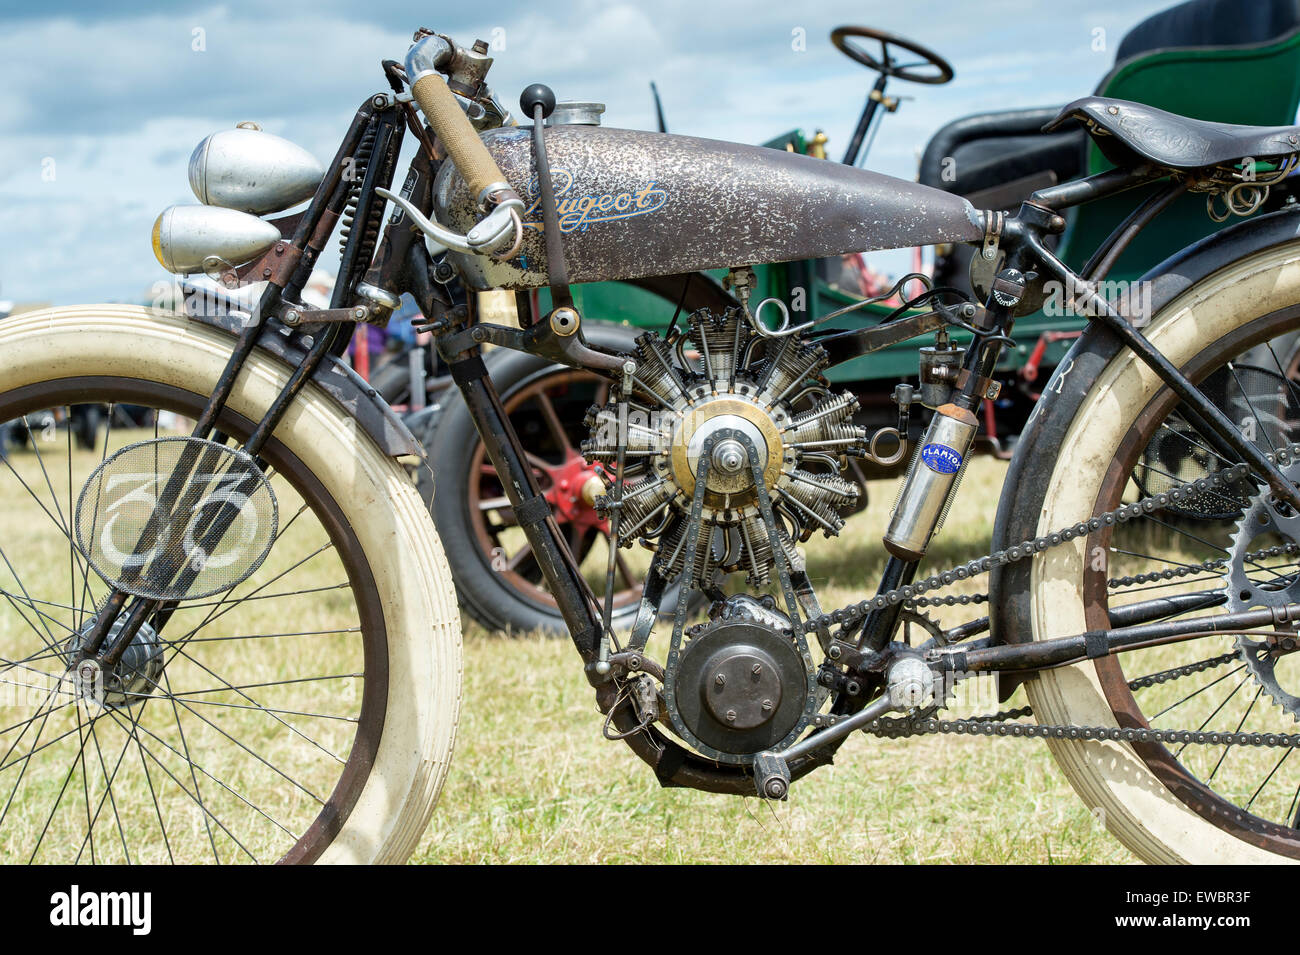 how to build motorcycle-engined cars